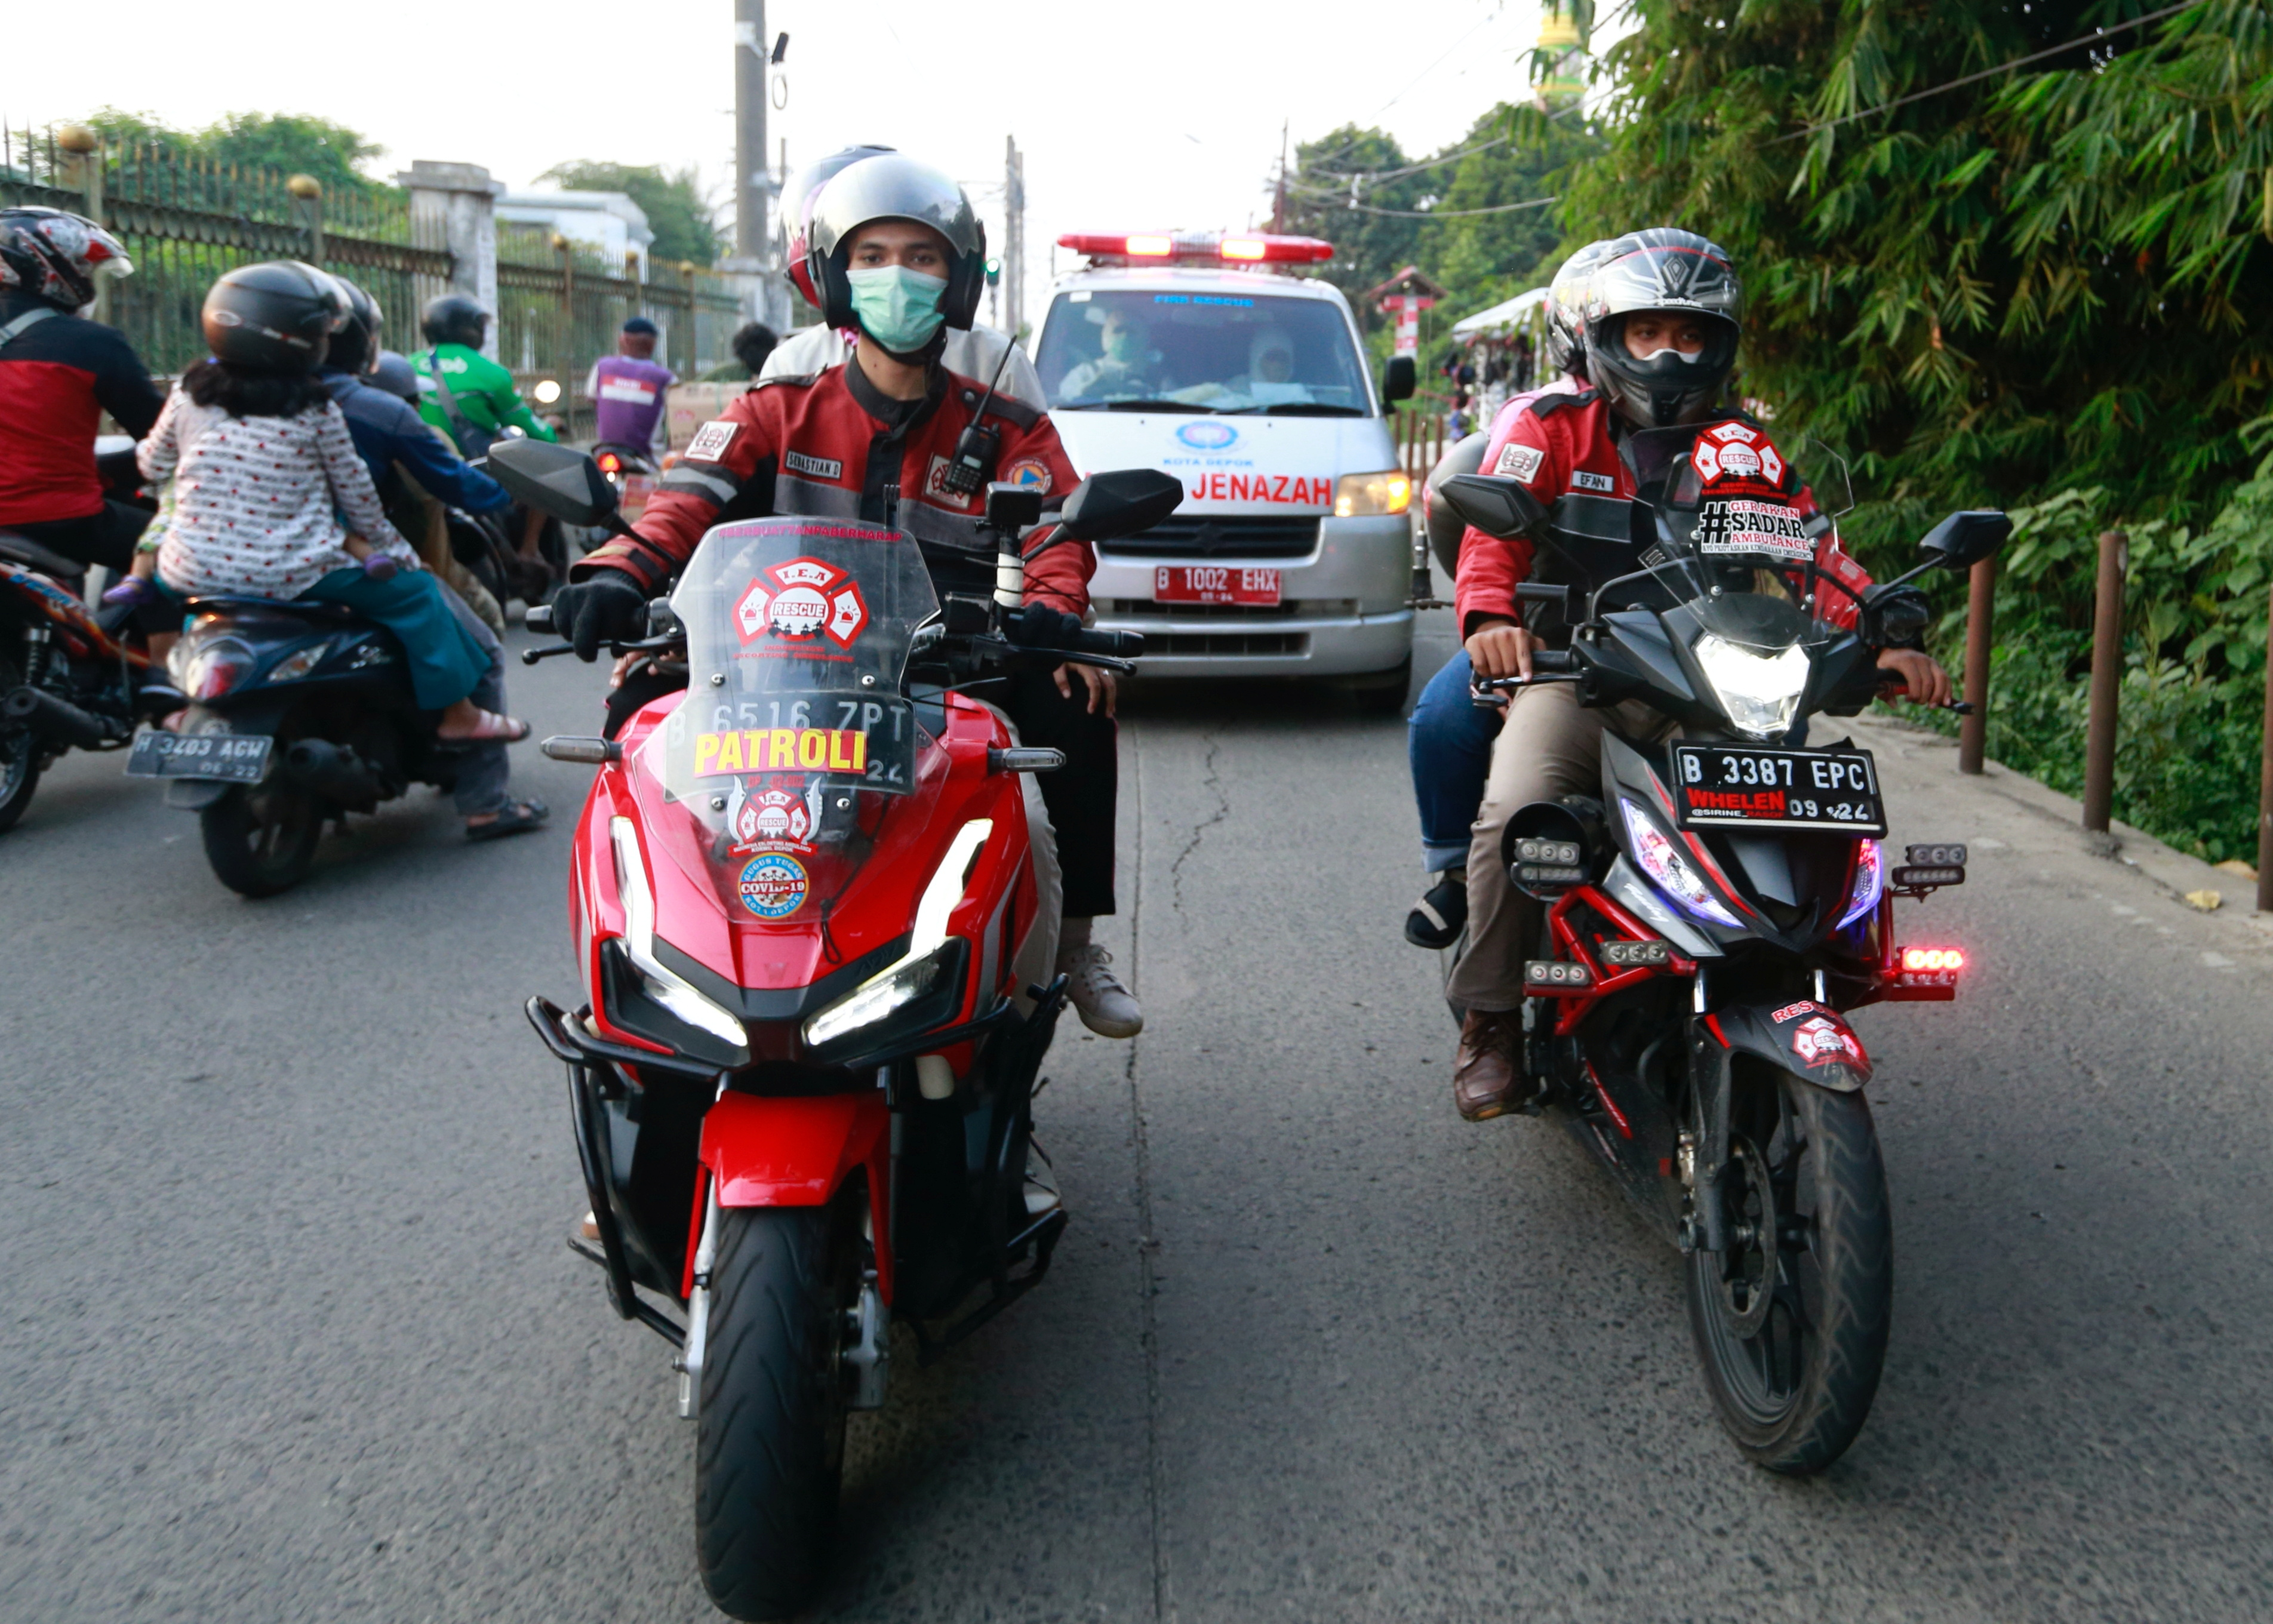 Volunteer bikers escort an ambulance to a cemetery as coronavirus disease (COVID-19) cases surge in Depok on the outskirts of Jakarta, Indonesia, July 2, 2021. REUTERS/Ajeng Dinar Ulfiana